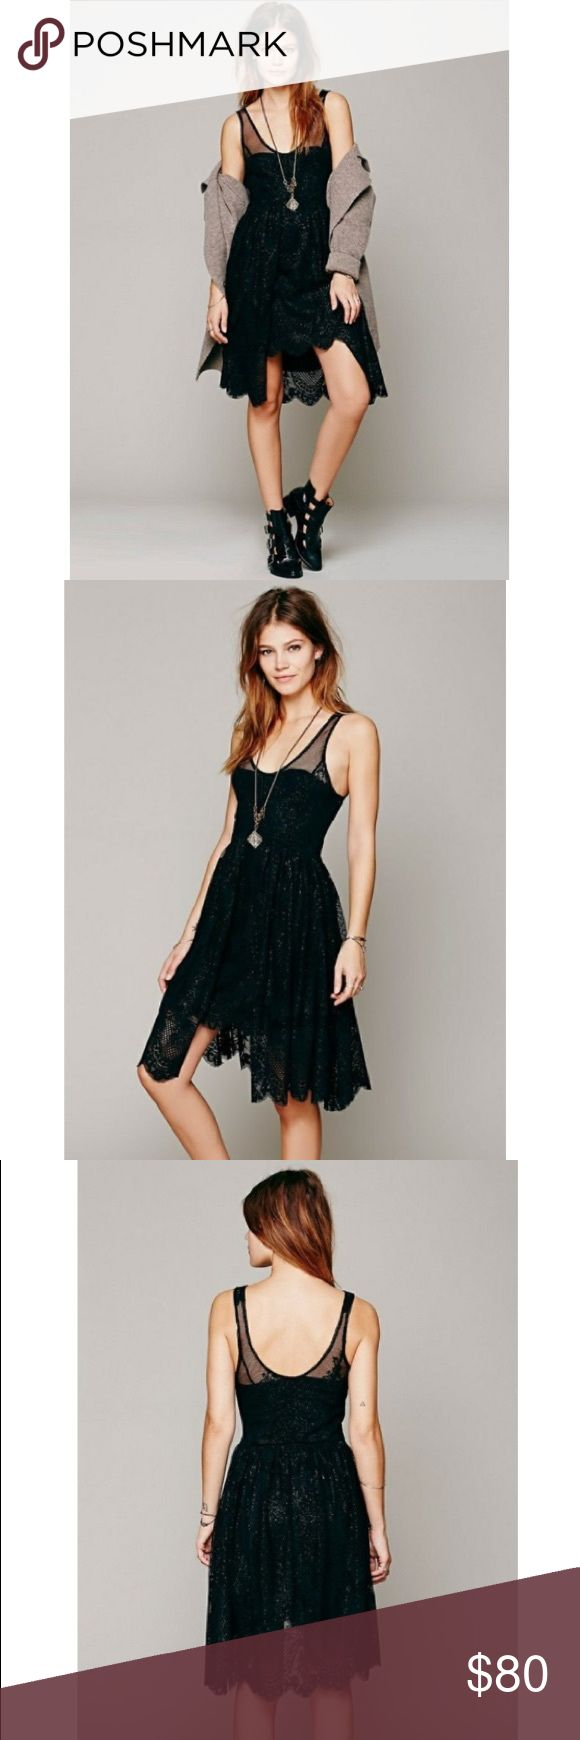 Free People Black Lace Foil Overlay Cocktail Dress Free People Black Lace Foil Overlay Cocktail Dress. Metallic gold threads add a touch of shimmer to this romantic lace dress. A ruched overlay accents the skirt and the raw hem falls in delicate scallops. Sheer straps and scoop neck with hidden zipper, lined. Perfect go to little black dress for any occasion! Brand new with tags, sold out online. Price is firm. Free People Dresses